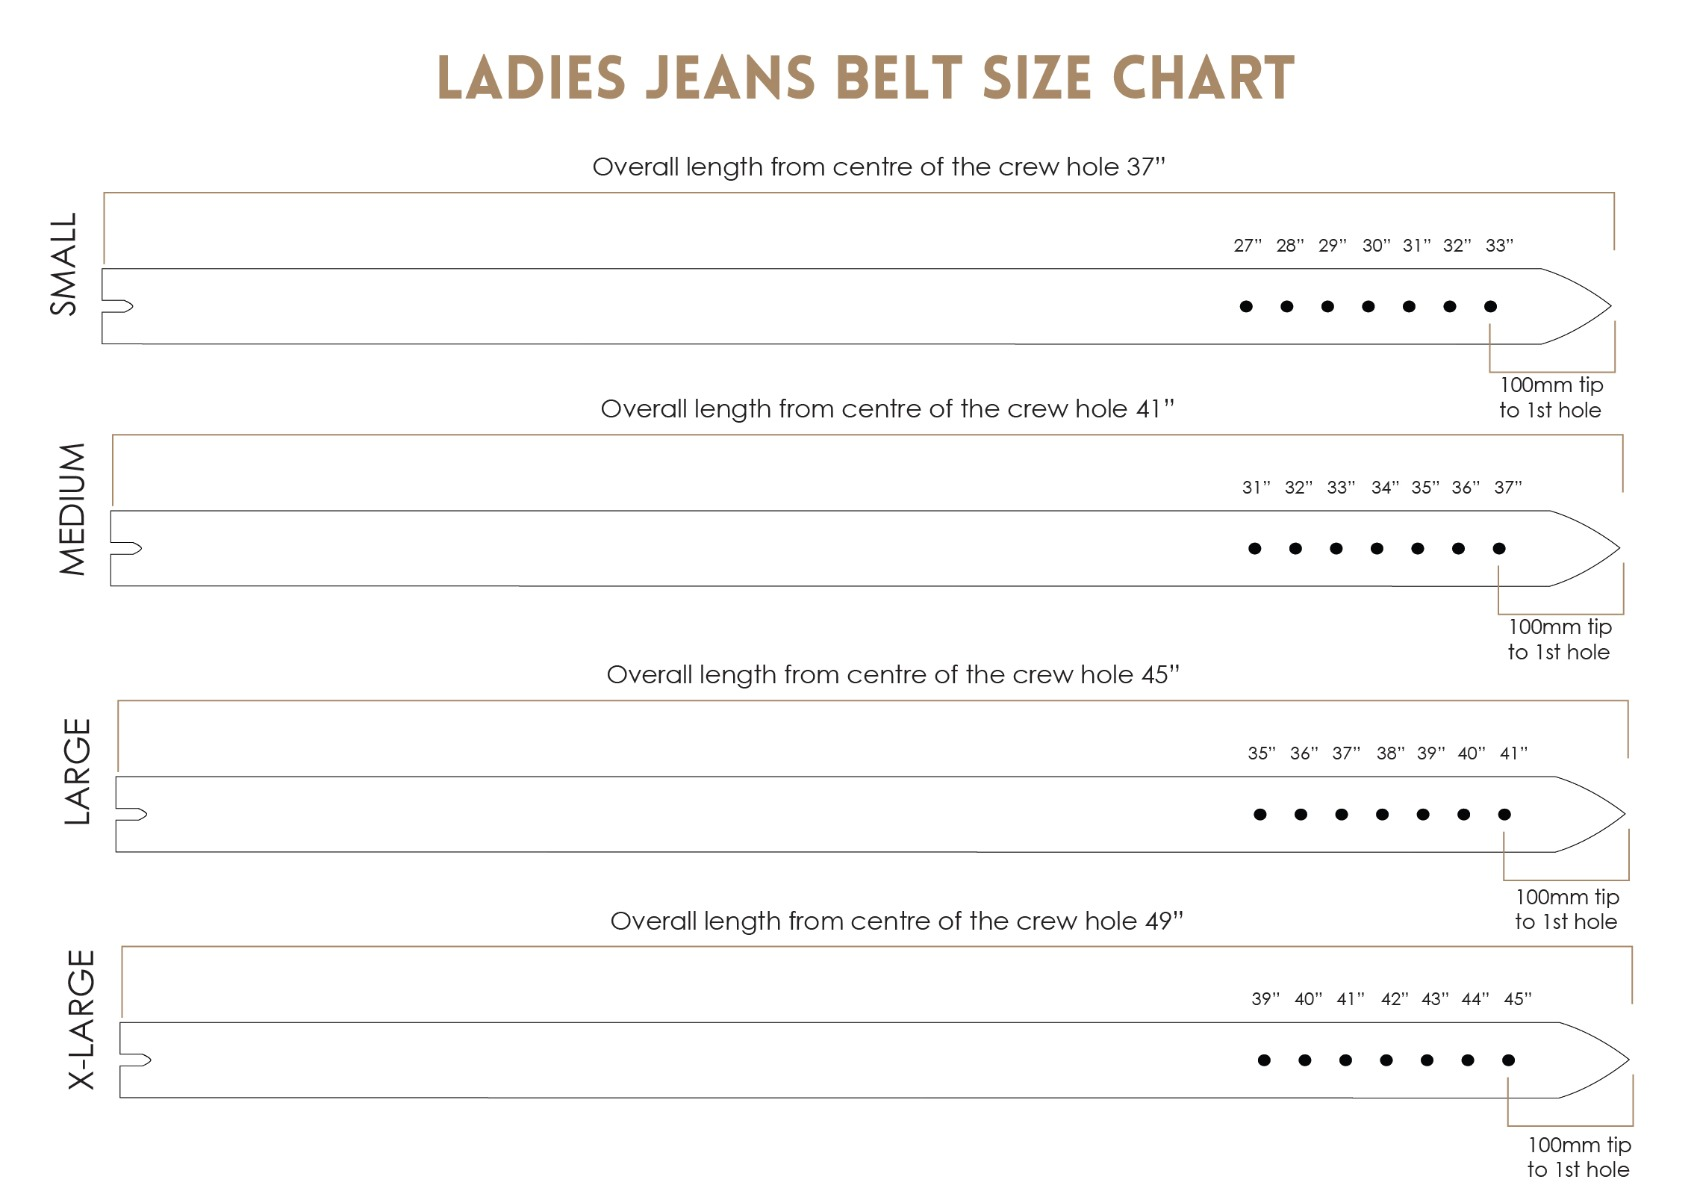 Mens and ladies british belt size guide the british belt company ladies jean size chart nvjuhfo Choice Image